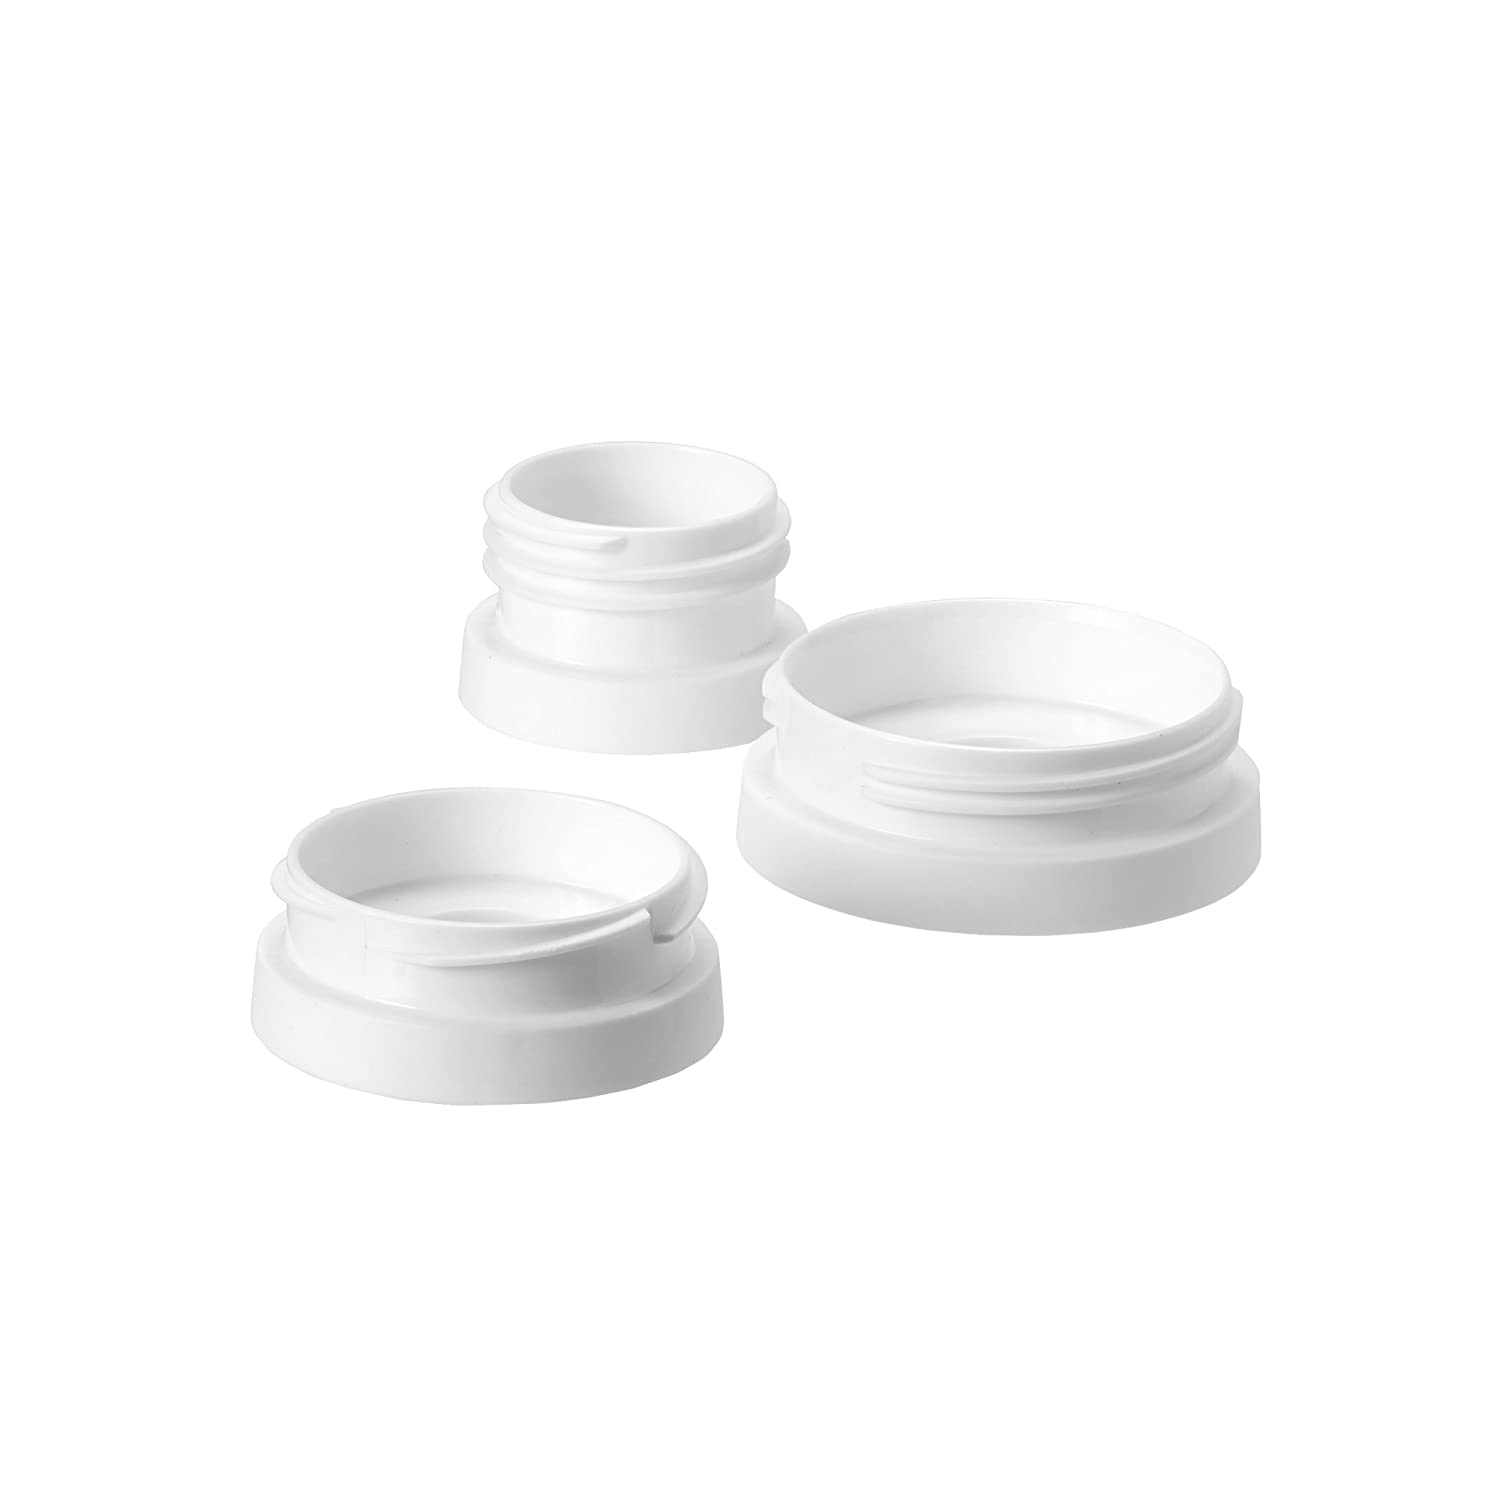 Tommee Tippee 3 Piece Pump and Go Breast Pump Adapter Set 522624